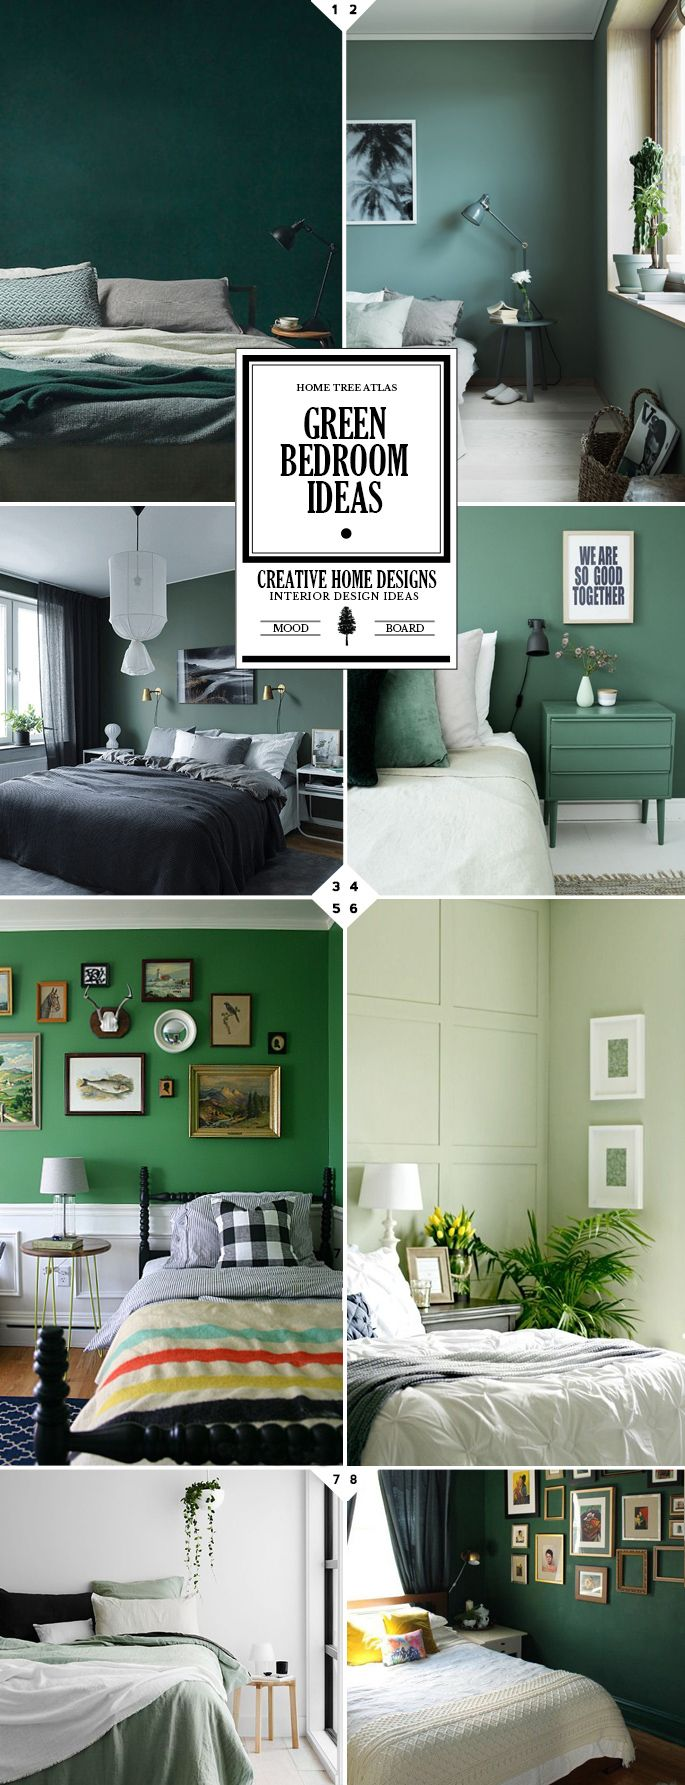 style guide green bedroom ideas - Green Bedroom Design